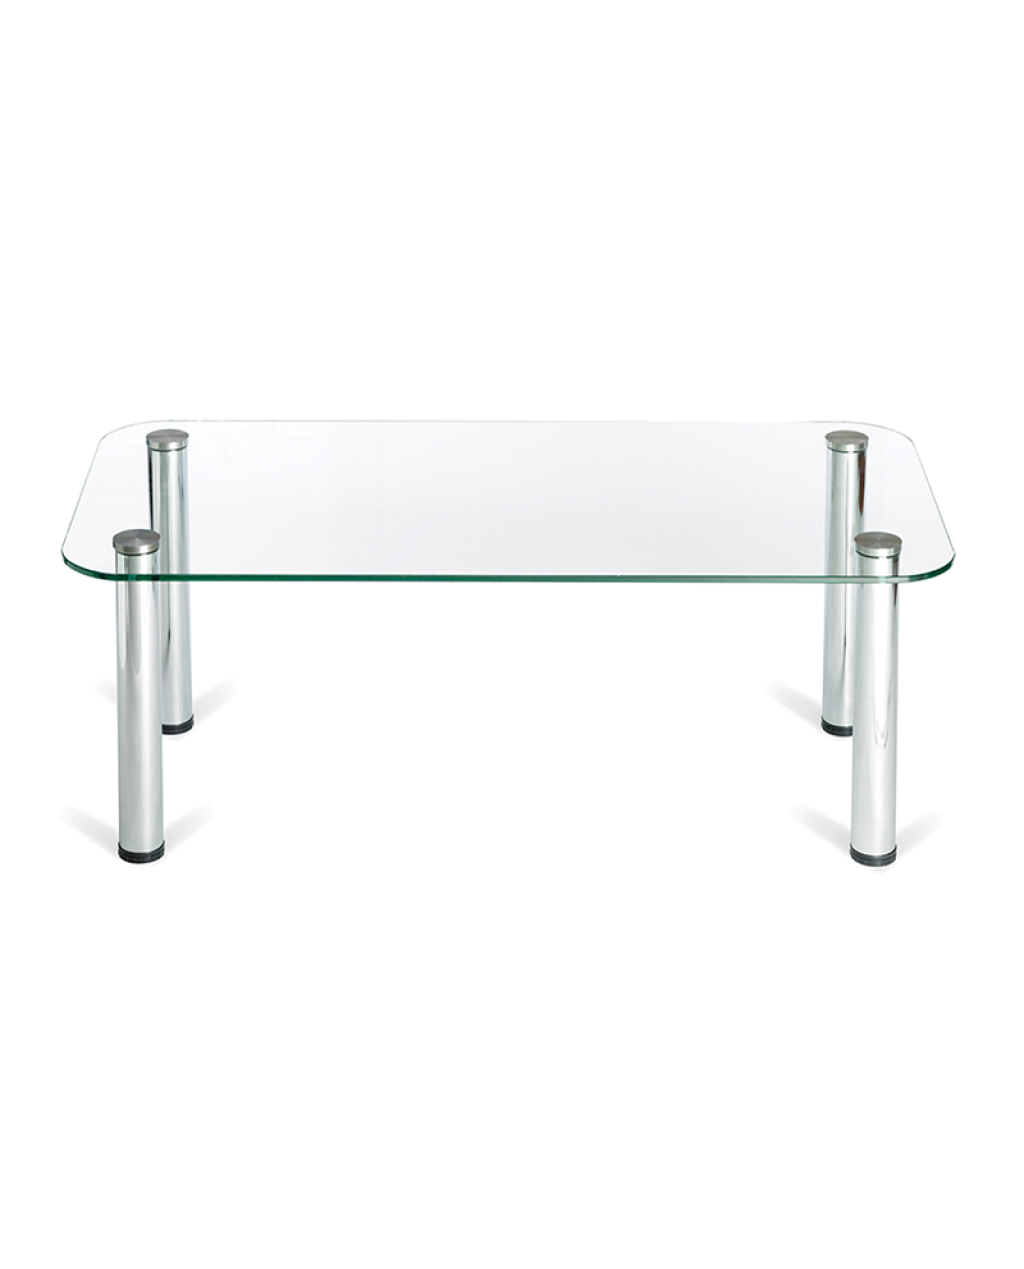 Rectangle Glass Coffee Table With Silver Legs Rectangle Glass Coffee Table Glass Coffee Table Coffee Table [ 1269 x 1024 Pixel ]